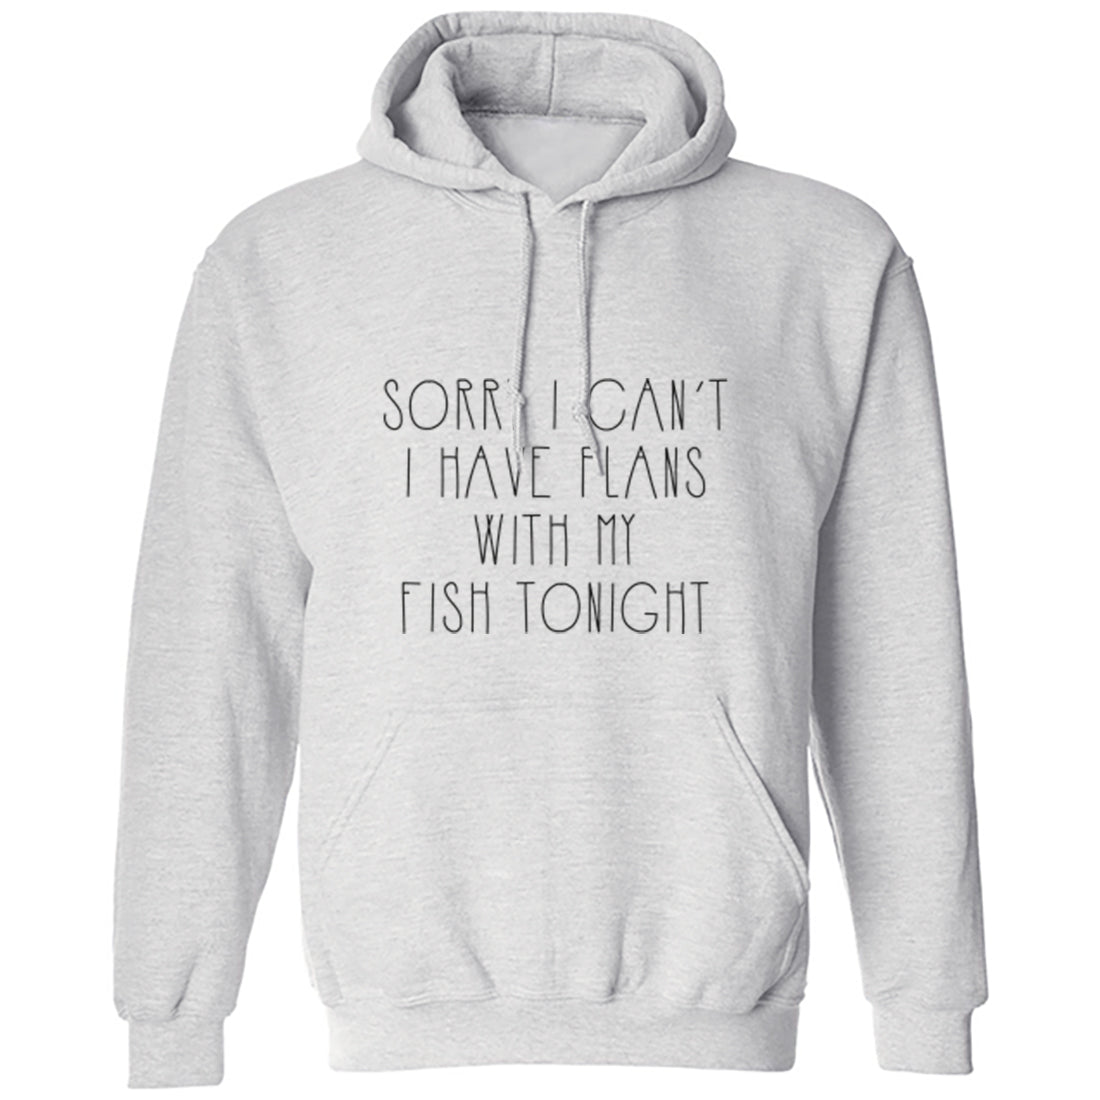 Sorry I Can't Tonight I Have Plans With My Fish Unisex Hoodie K1277 - Illustrated Identity Ltd.